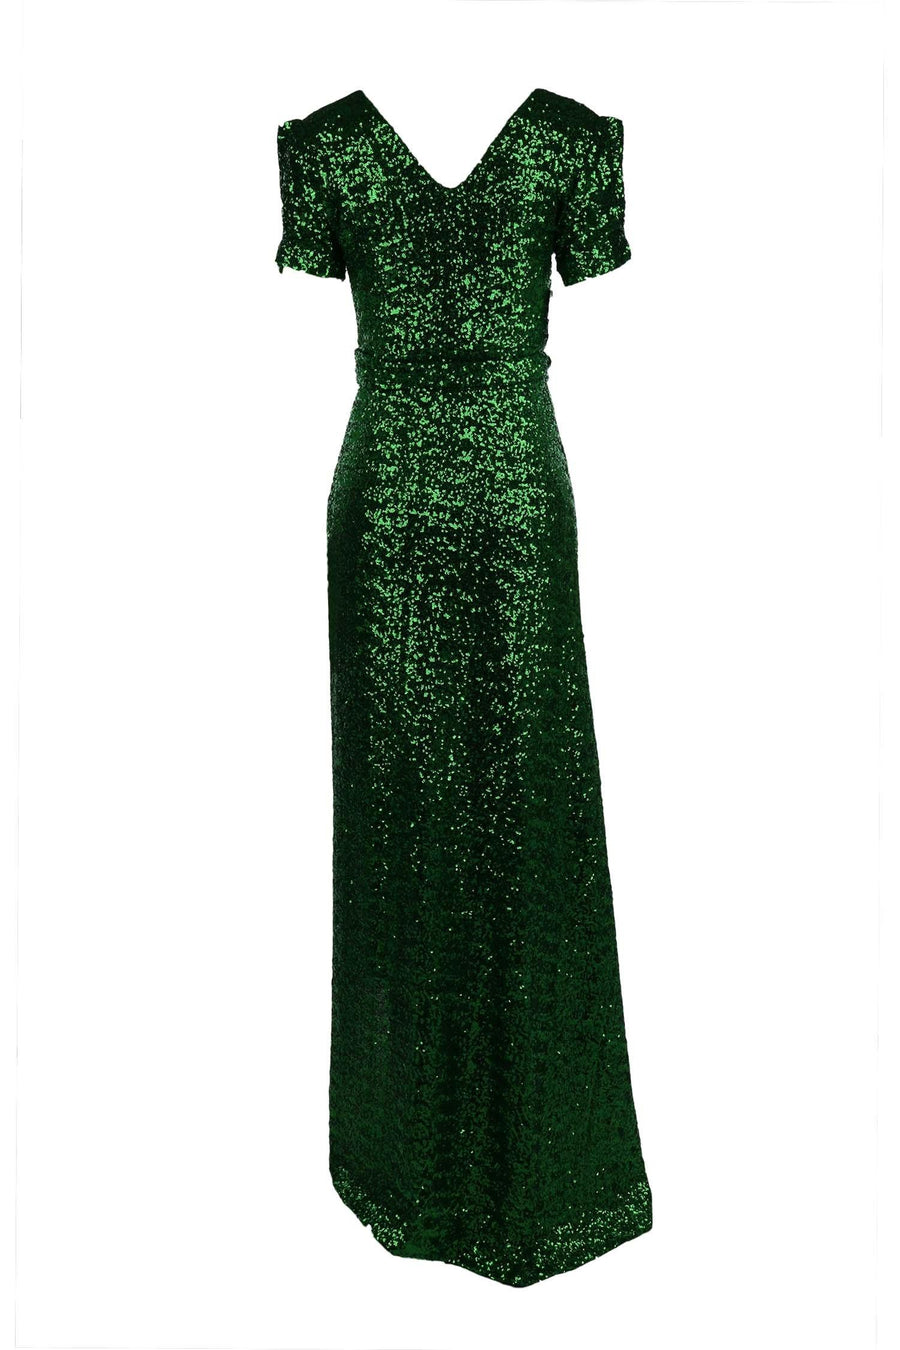 Viva Gown in Green Sequin